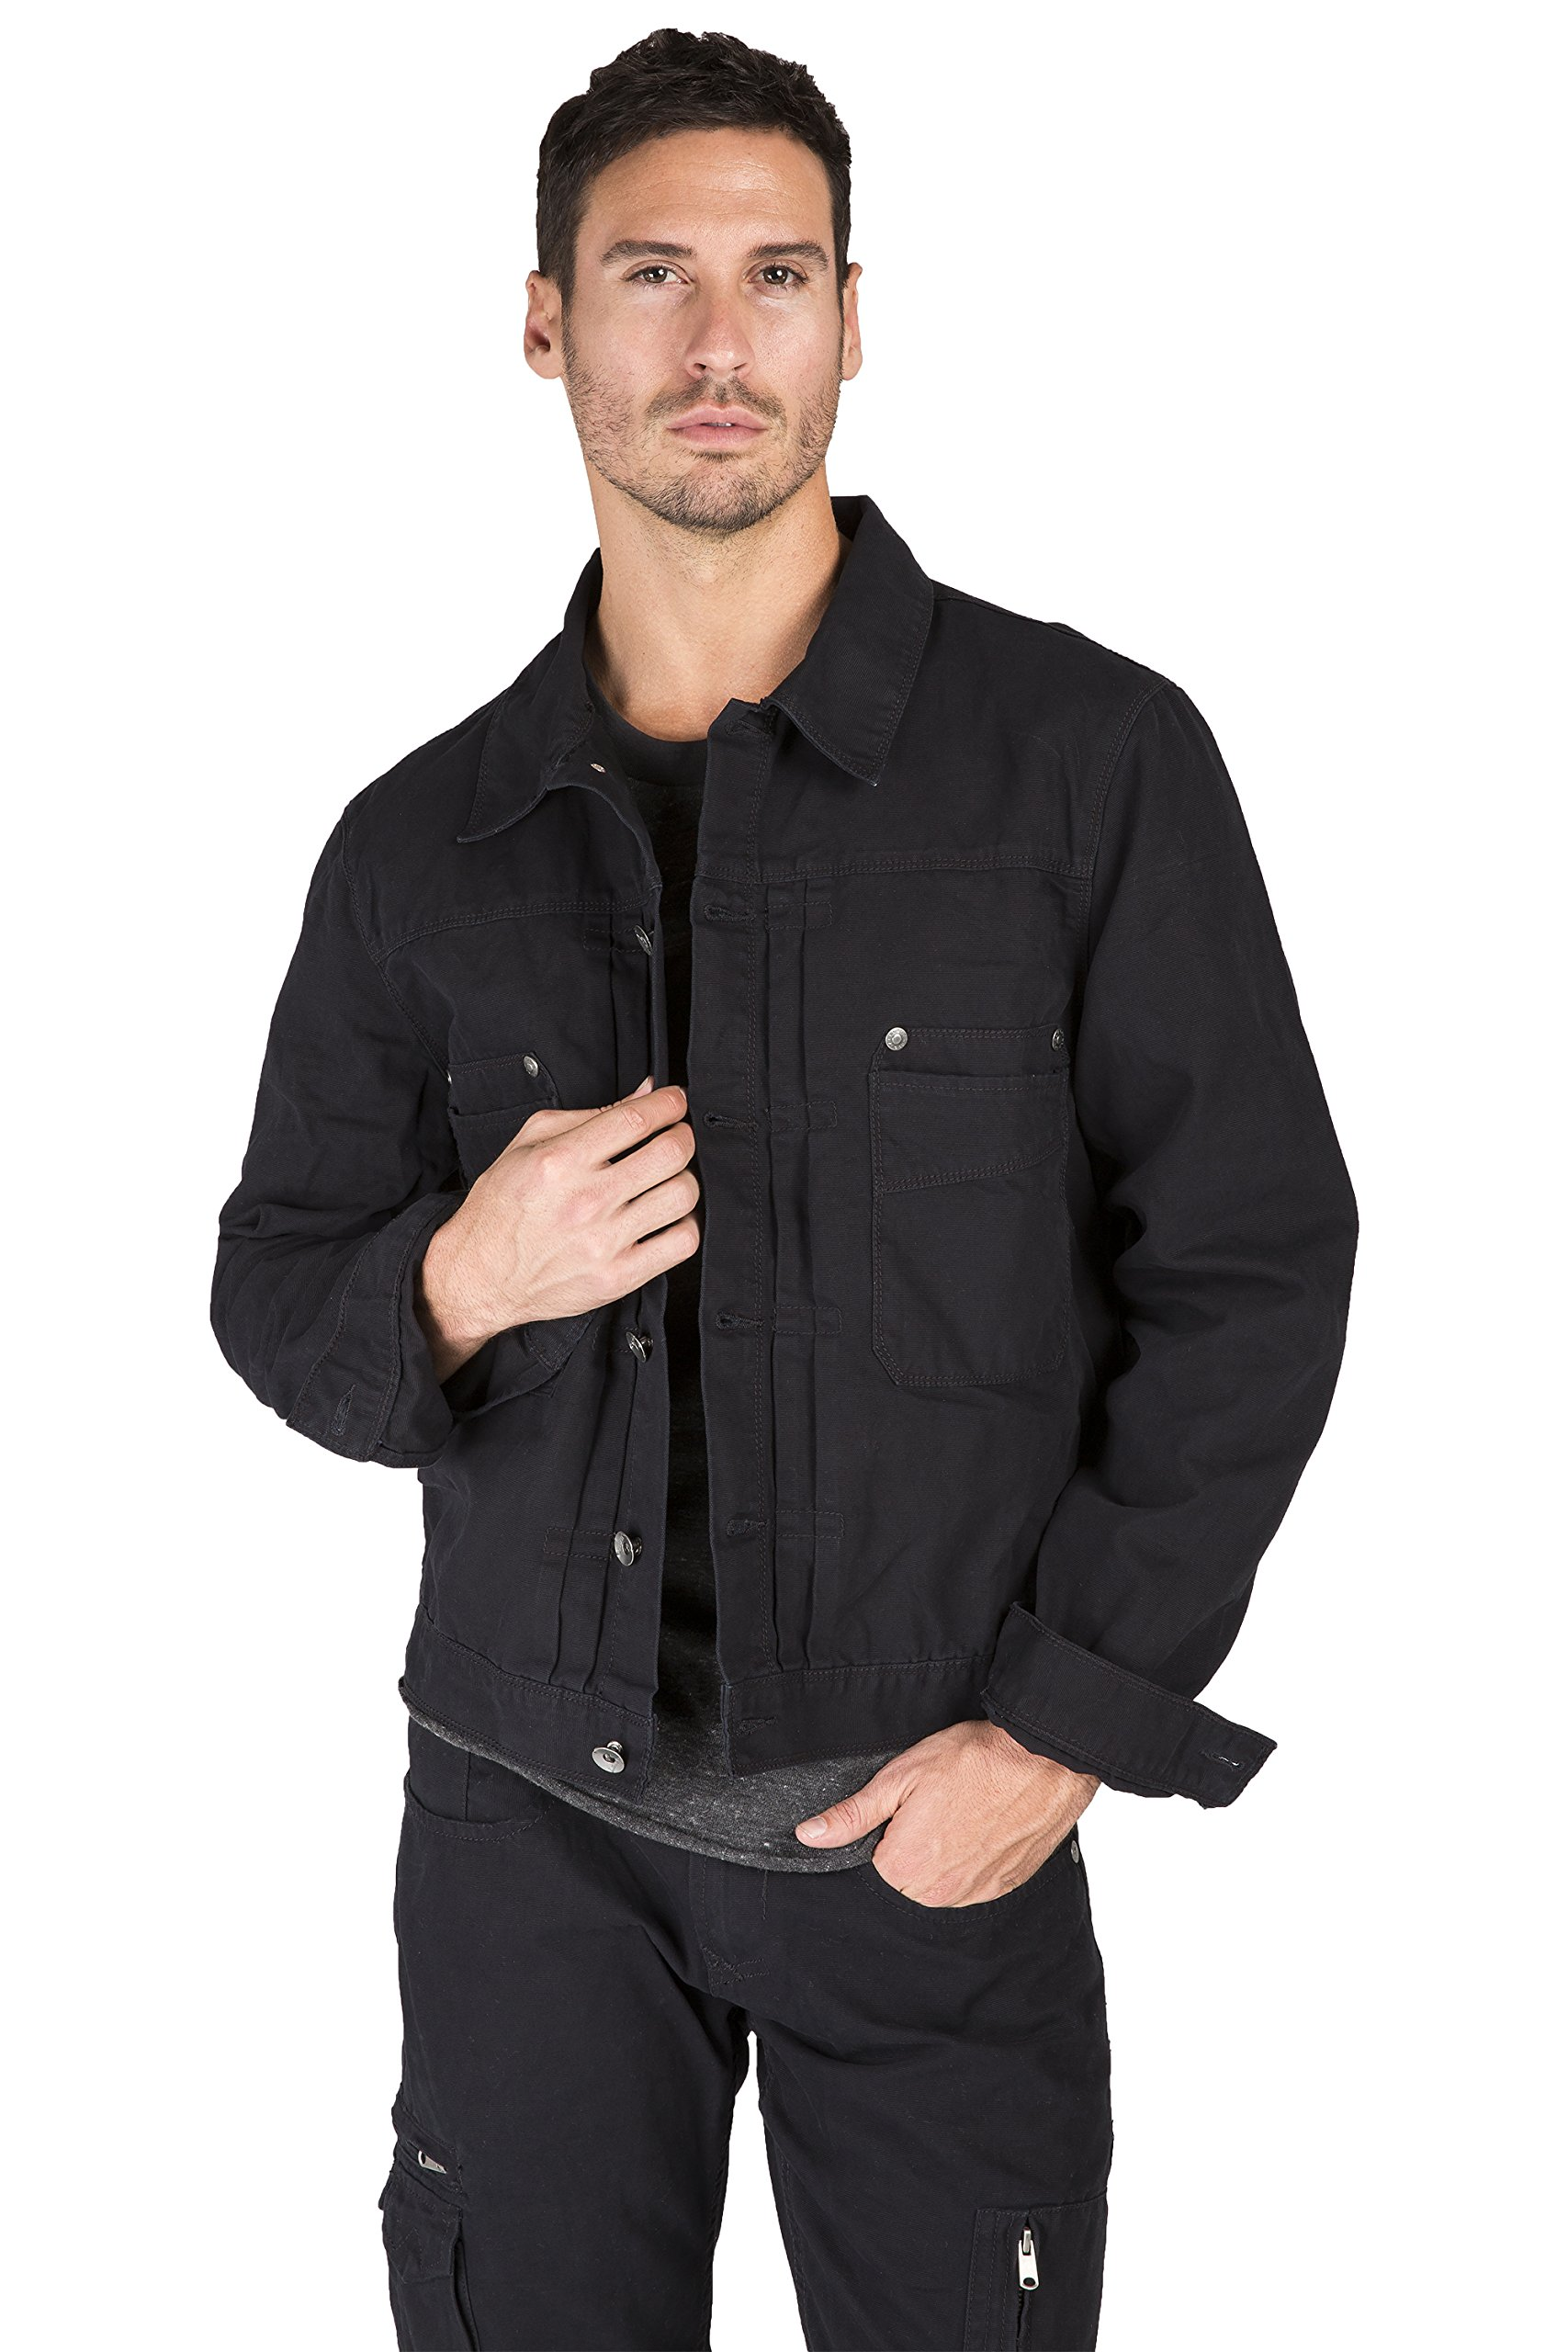 Level 7 Men's Cotton Canvas Trucker Jacket Timber Color Heavy Rugged Wash